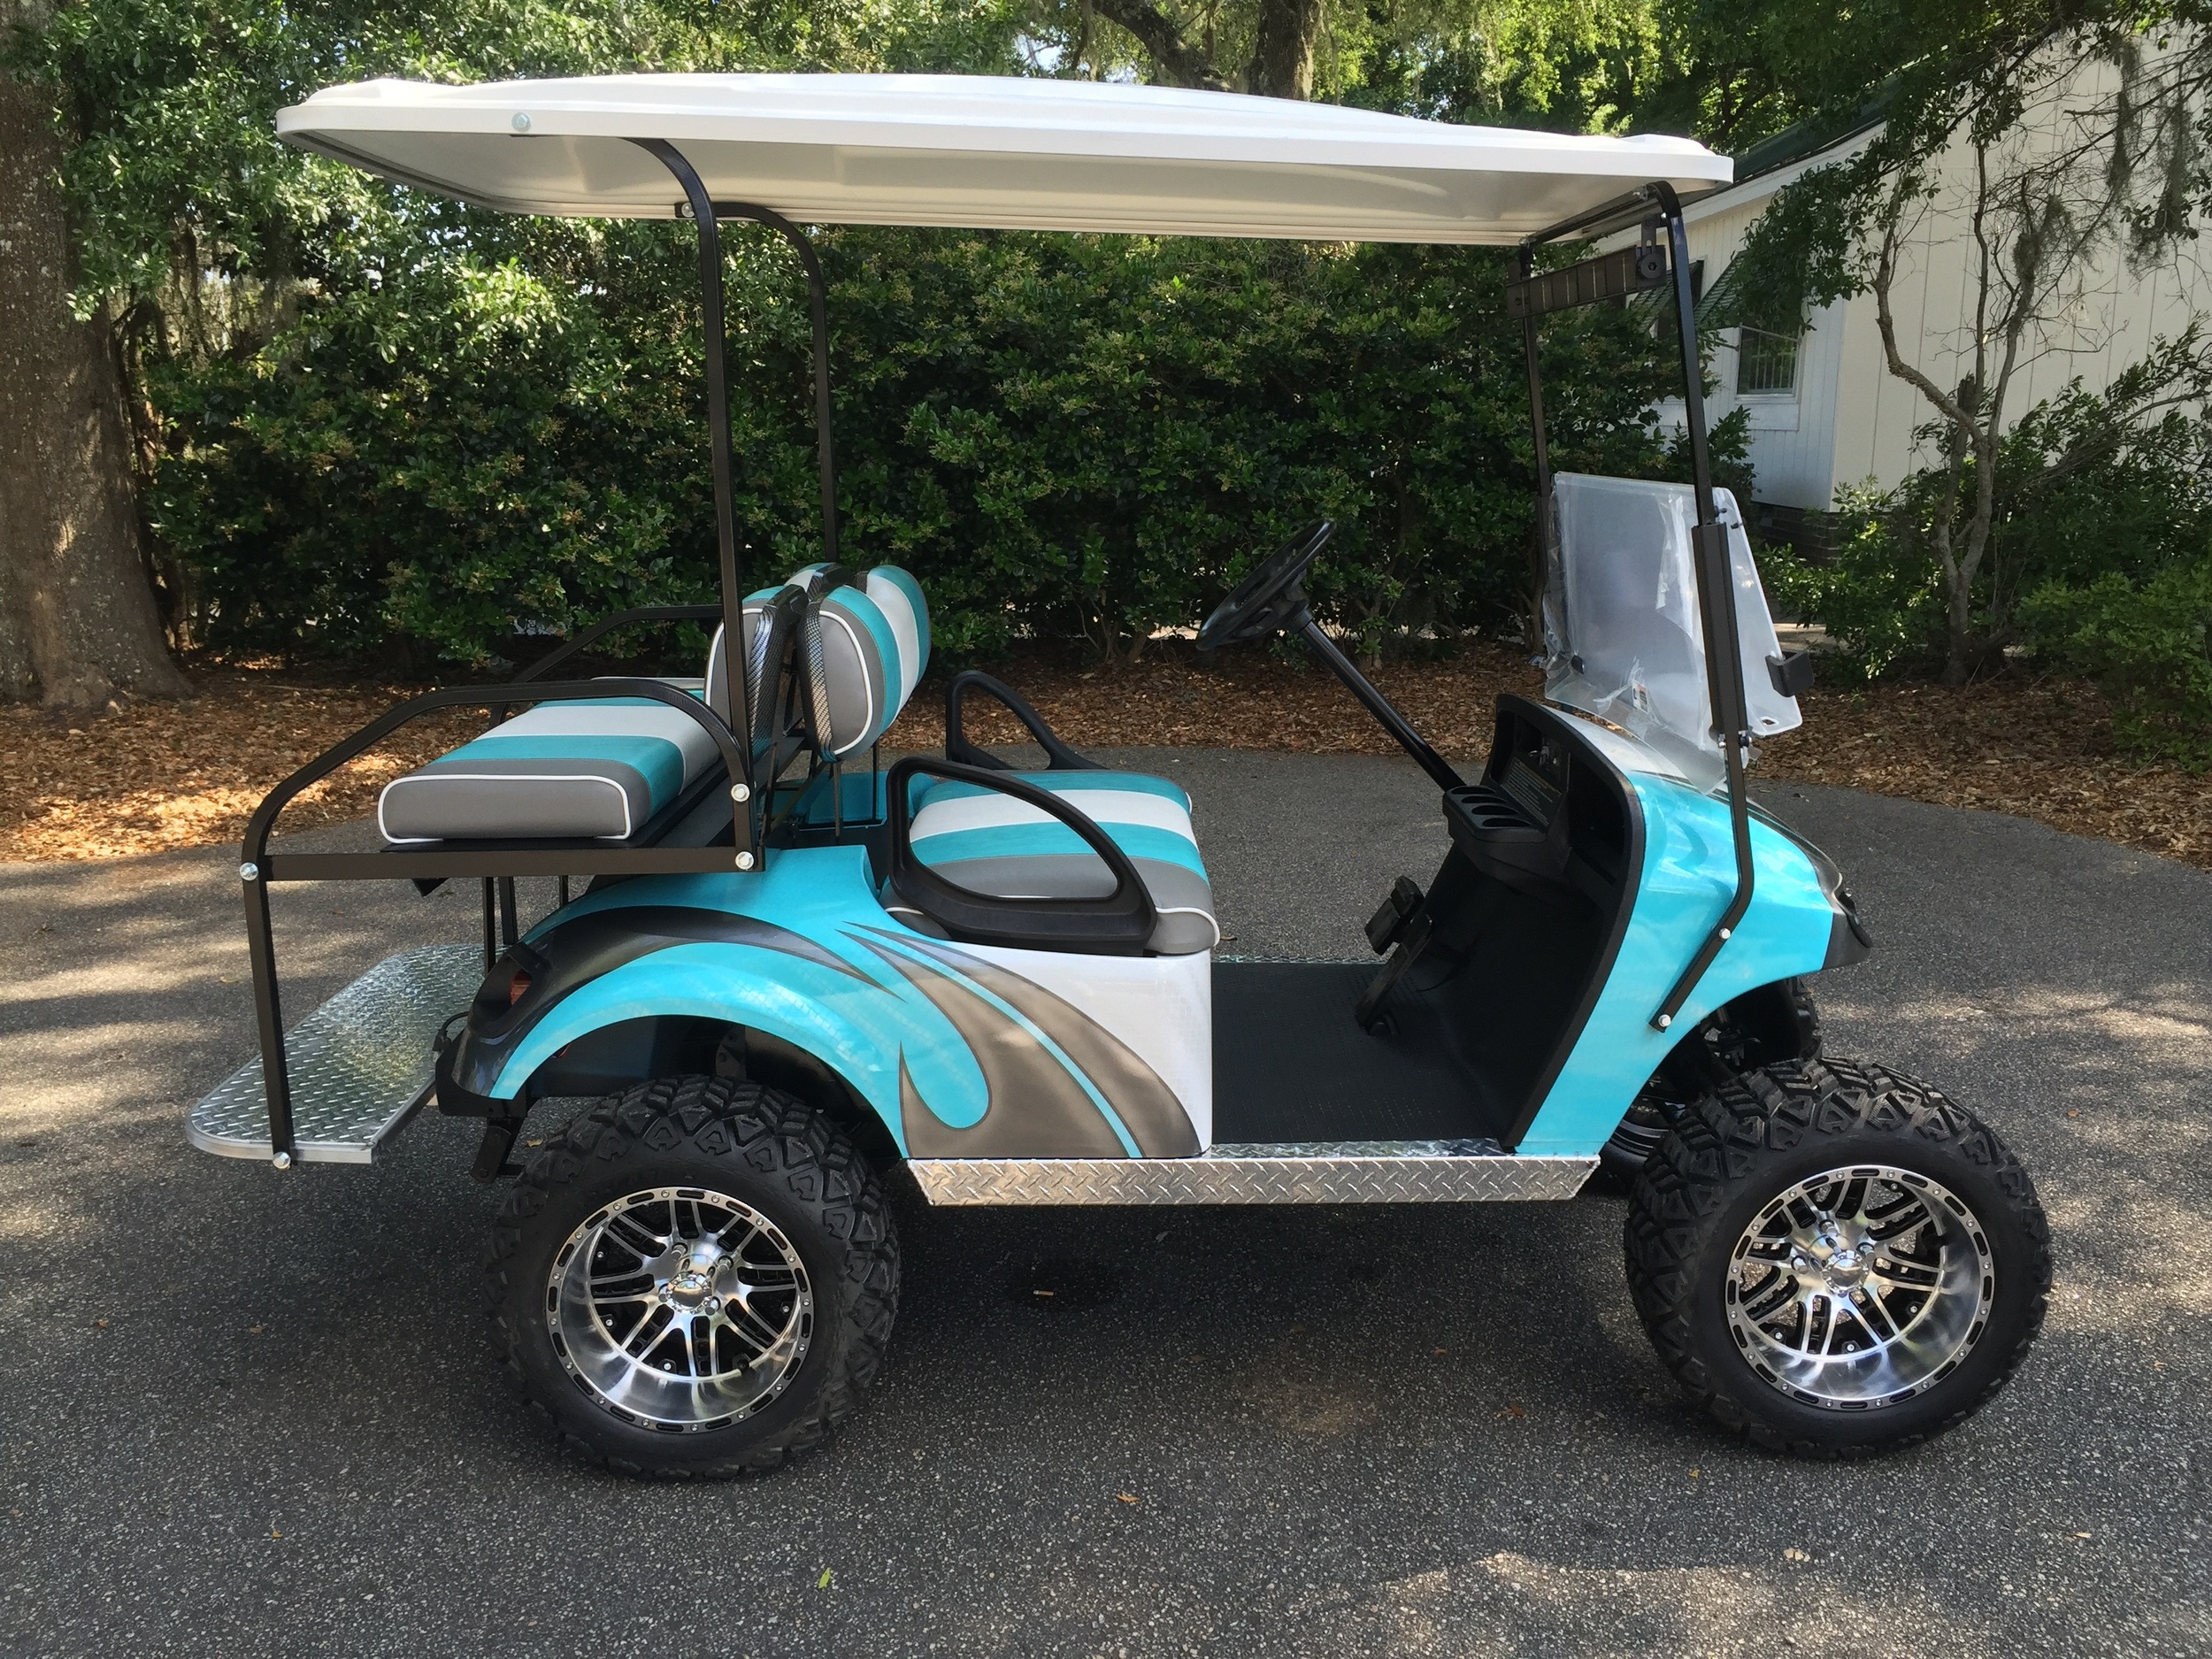 Aqua Swirl EZGO Lifted Cart  Aqua/smoke/white seats, white extended top, new batteries, high speed code, LED lights, Backlash (23x10x14) tires, mirror, flip windshield, and state of charge meter